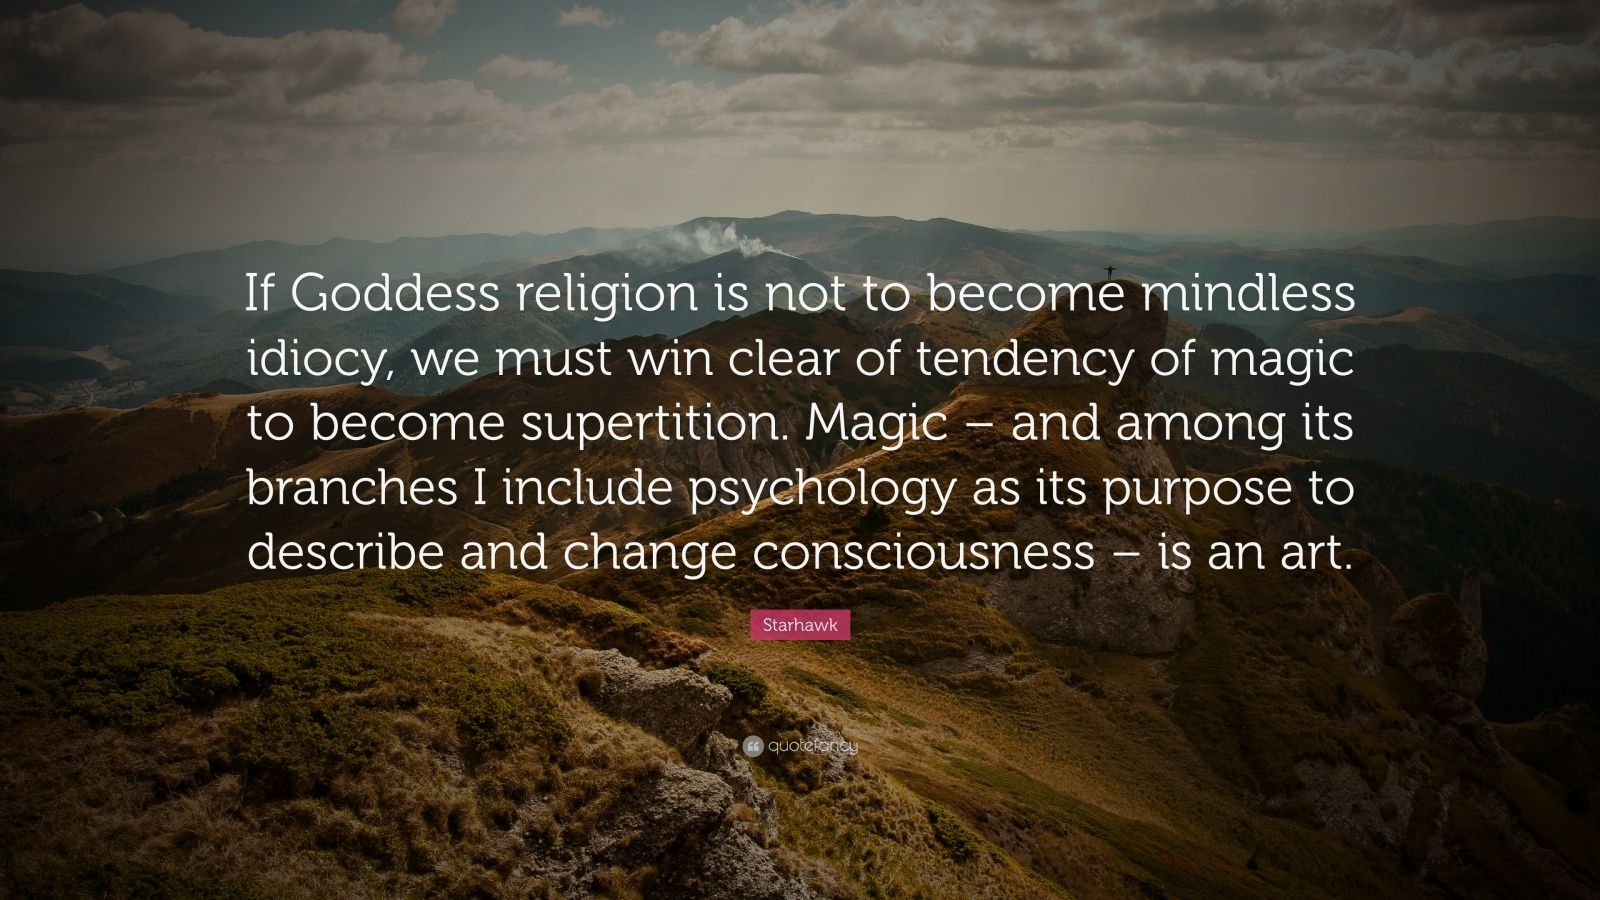 """Starhawk Quote: """"If Goddess religion is not to become mindless idiocy, we must win clear of tendency of magic to become supertition. Magic – and among its branches I include psychology as its purpose to describe and change consciousness – is an art."""""""